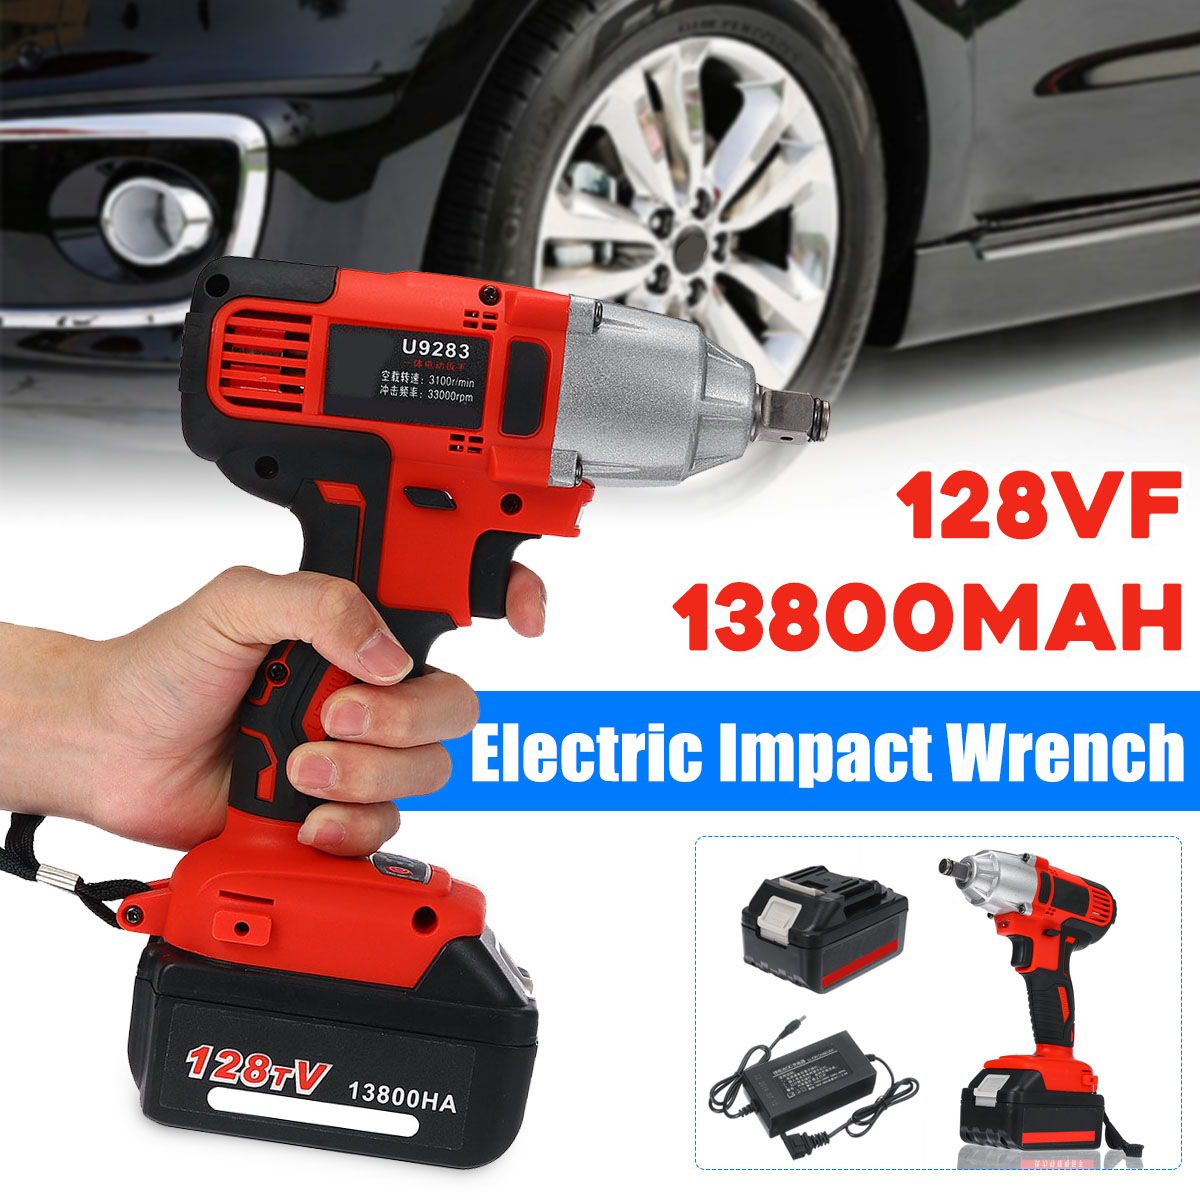 Doersupp Electric Wrench 128VF 13800mAh Multifunctional Battery Infinitely Variable Speed Electric Impact Wrench Woodworking